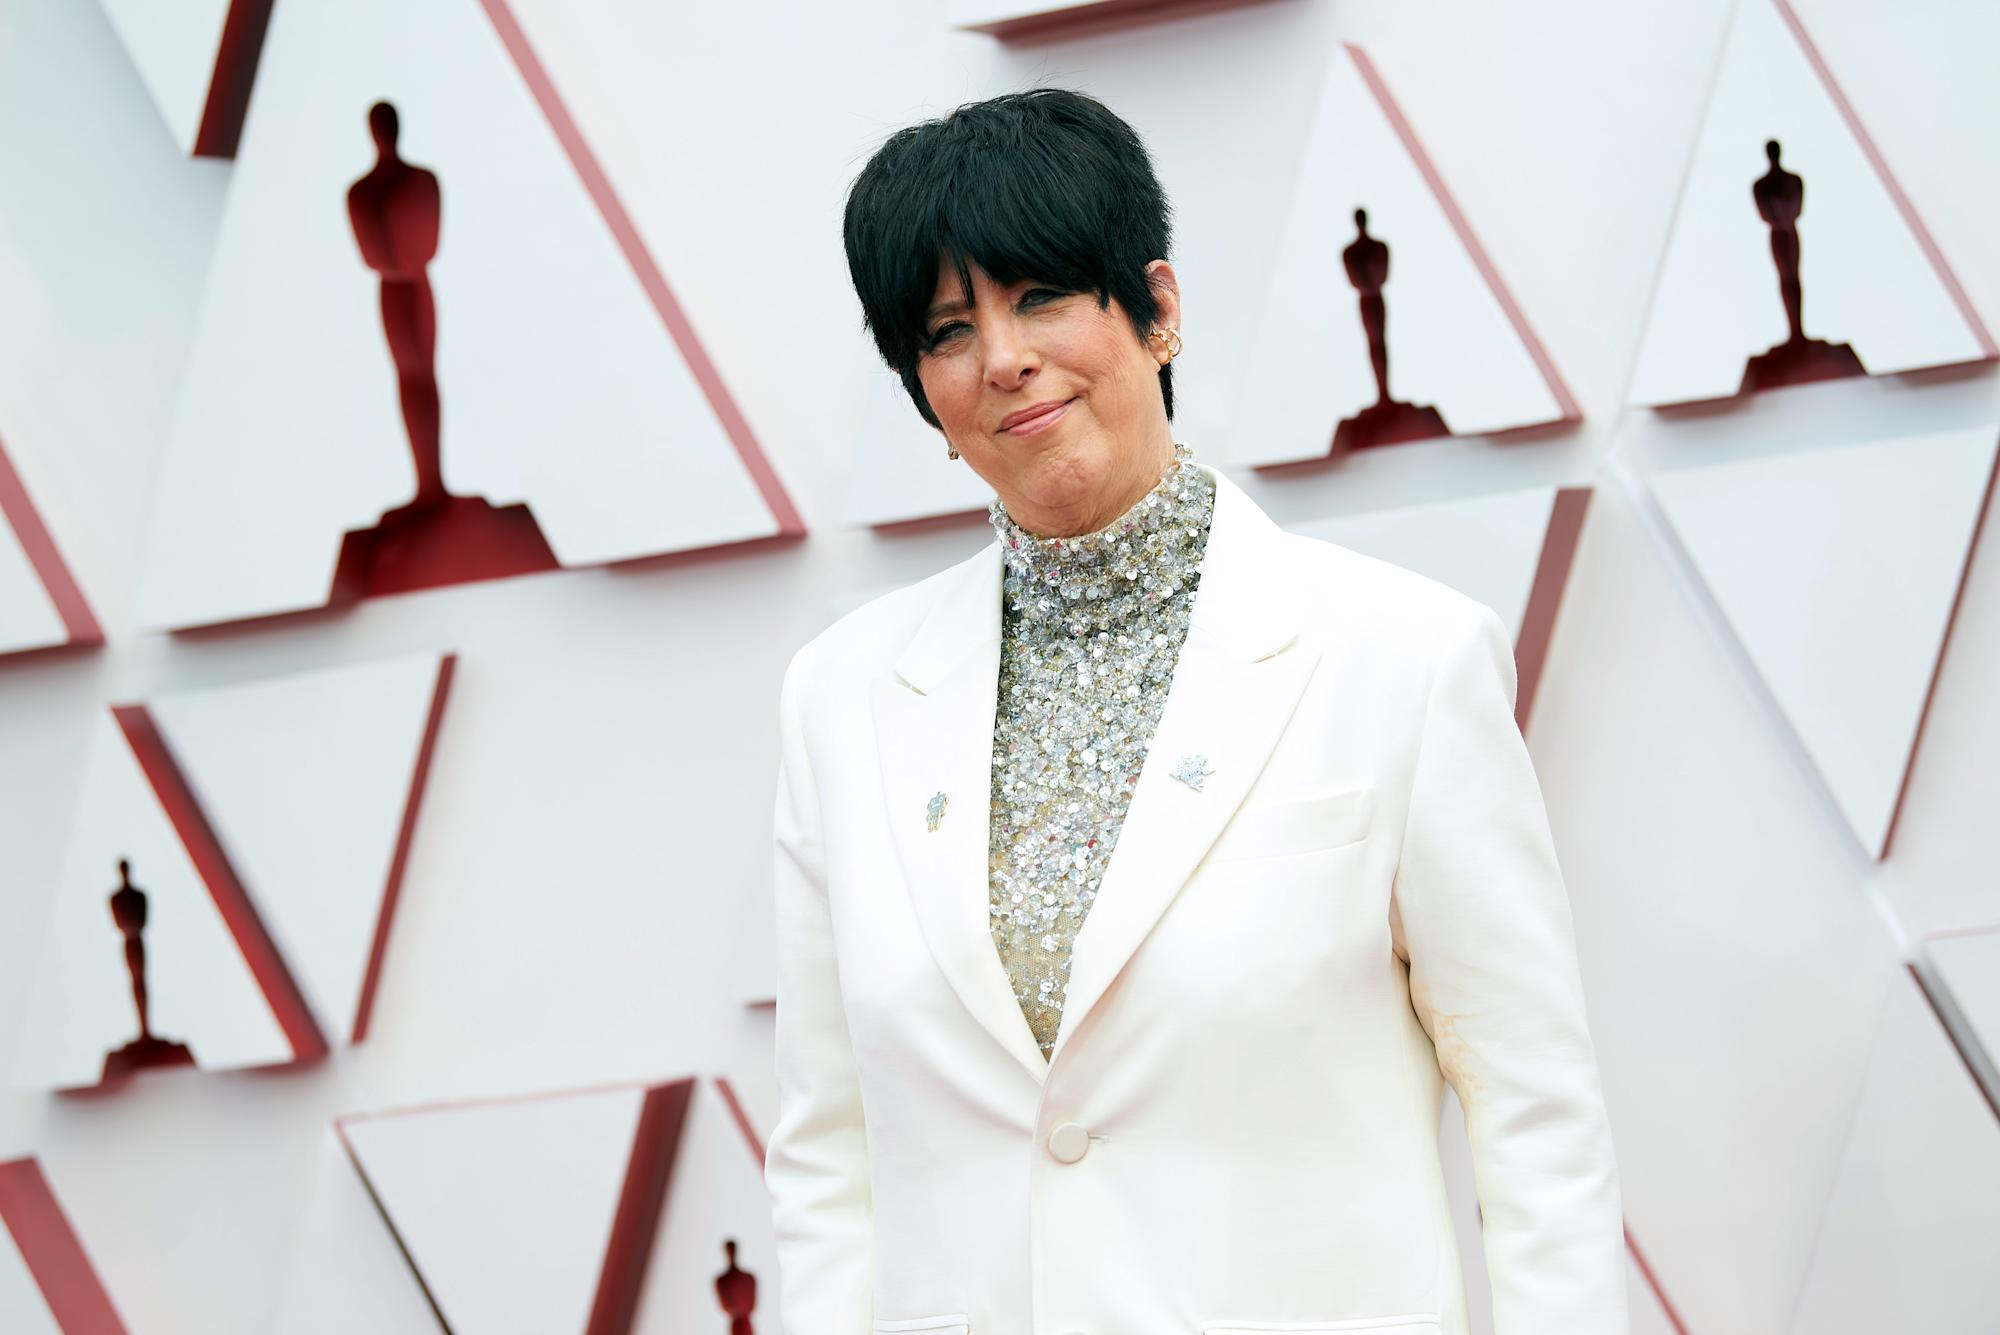 She is 0-for-12 at the Oscars, but Diane Warren remains upbeat: 'I hold a record in something!'